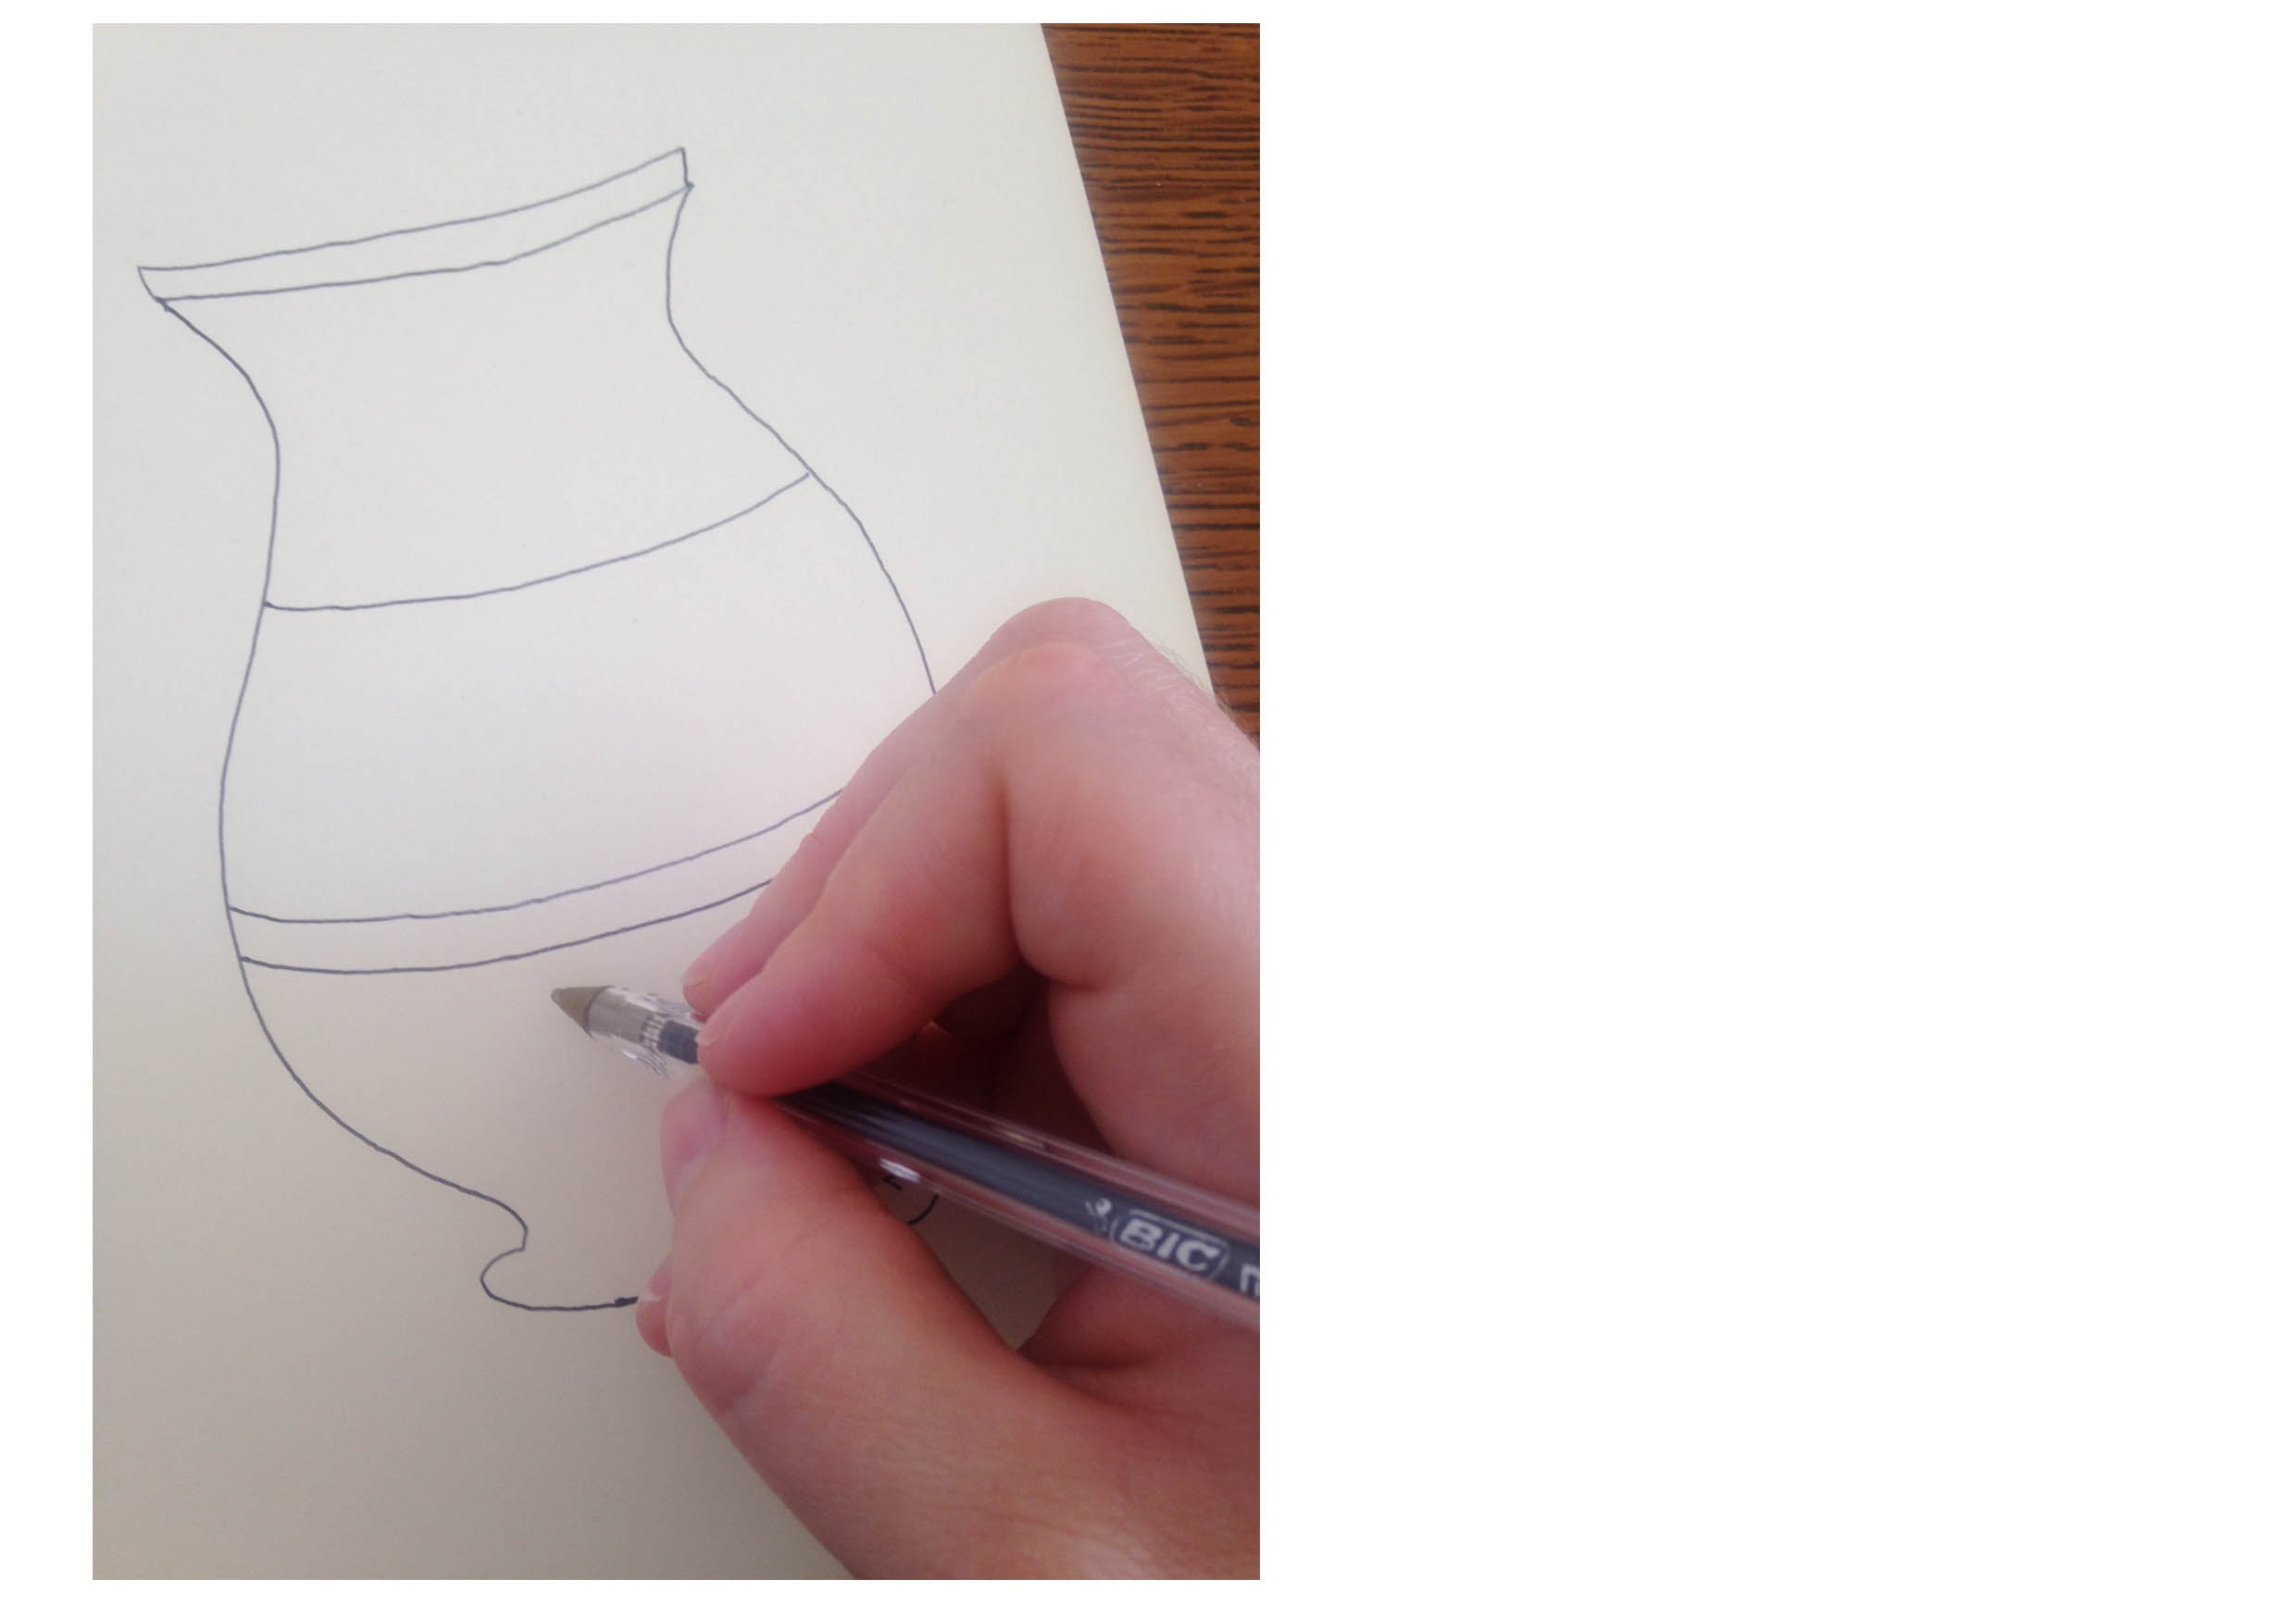 Step 2: - Divide the object or shape into sections.